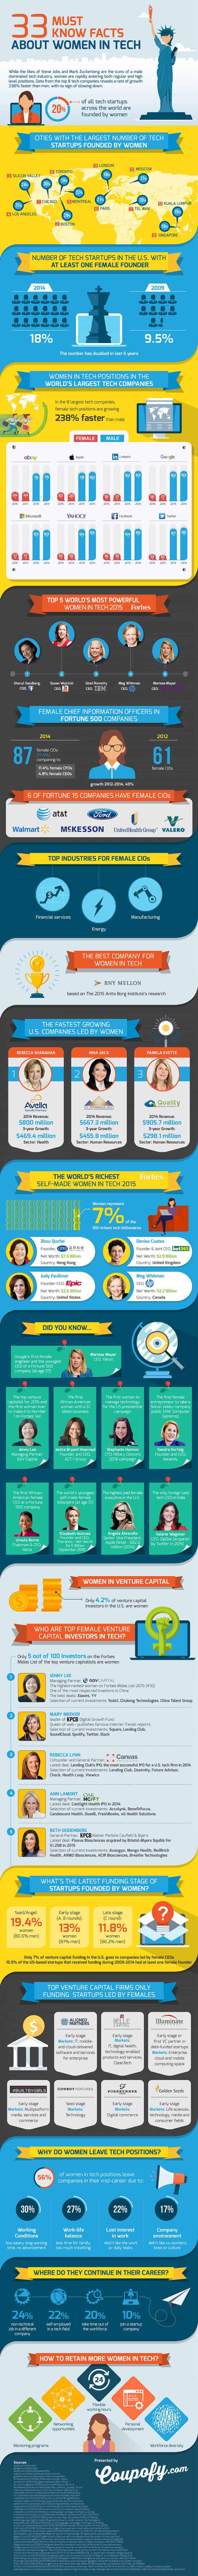 33 Must-Know Facts About Women in Technology